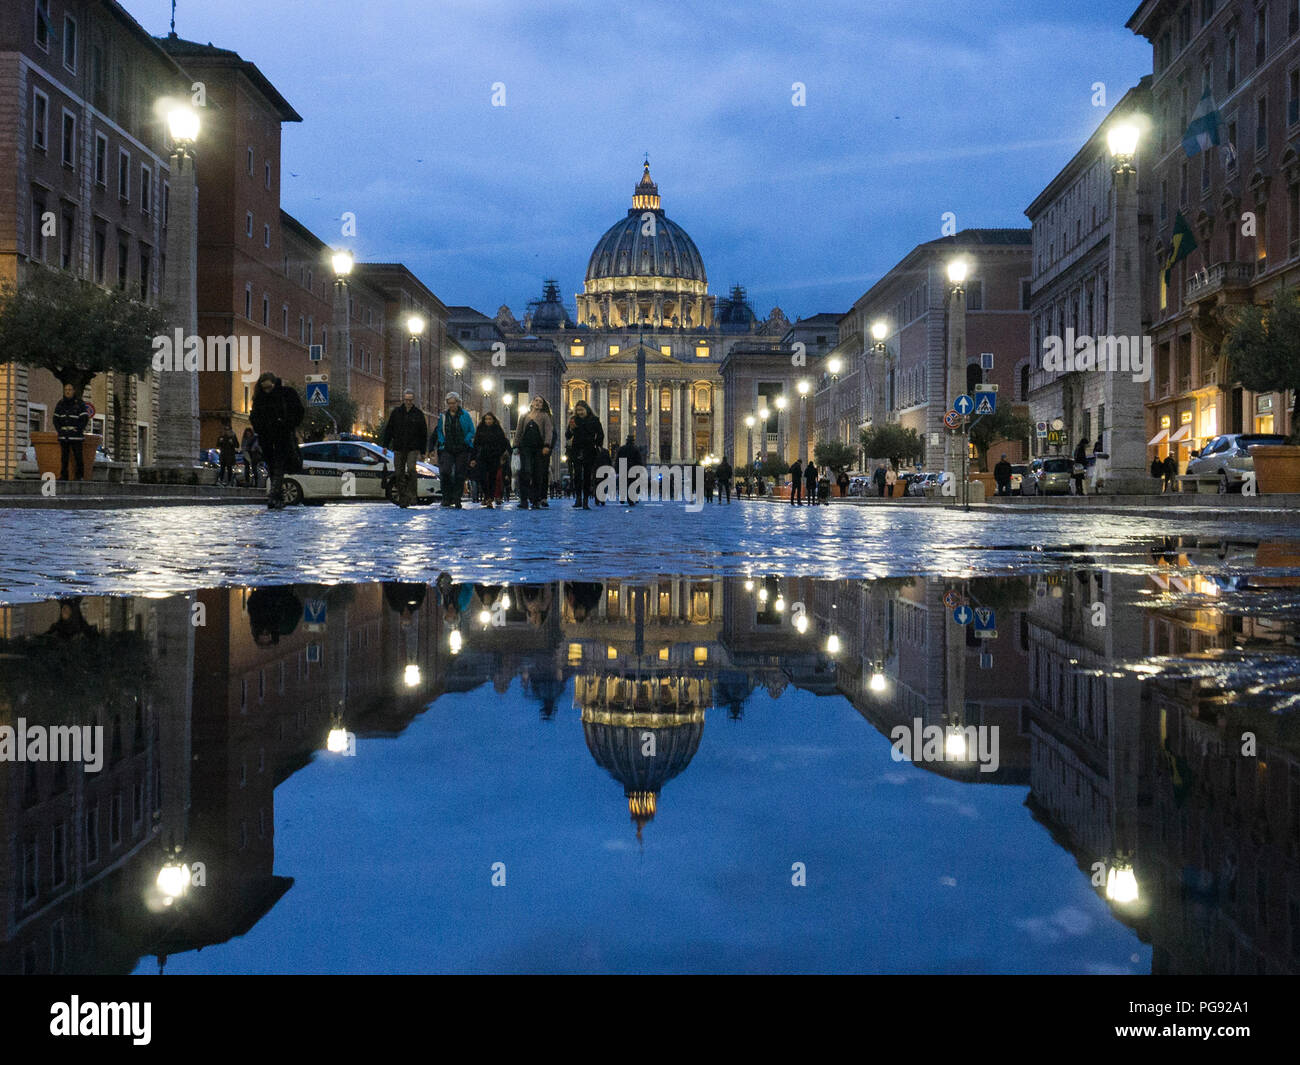 St. Peter's Basilica in vatican in Rome, Italy. Stock Photo